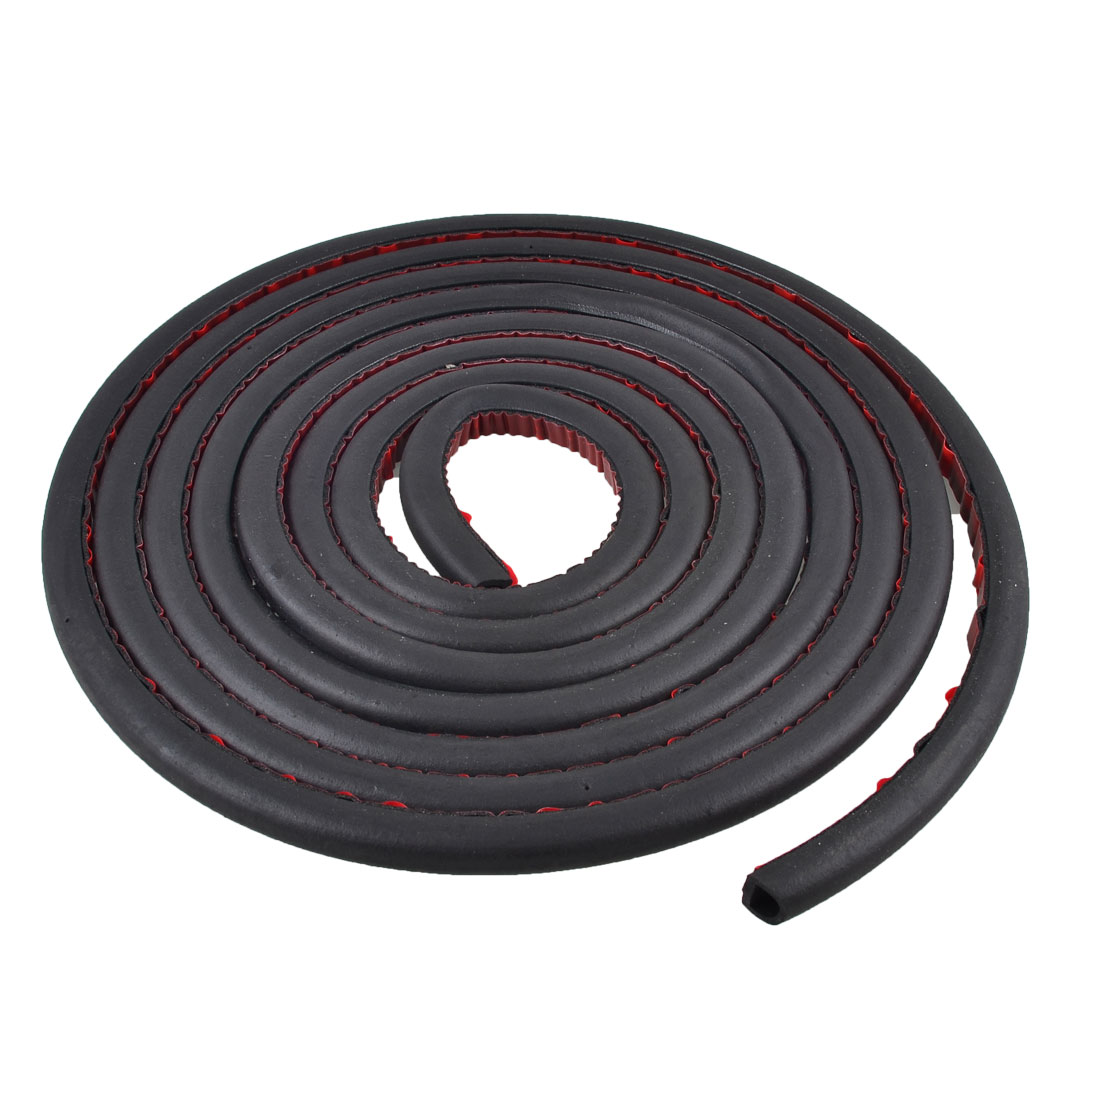 Car Auto Door D Shaped Weatherstrip Seal Black 9.8ft